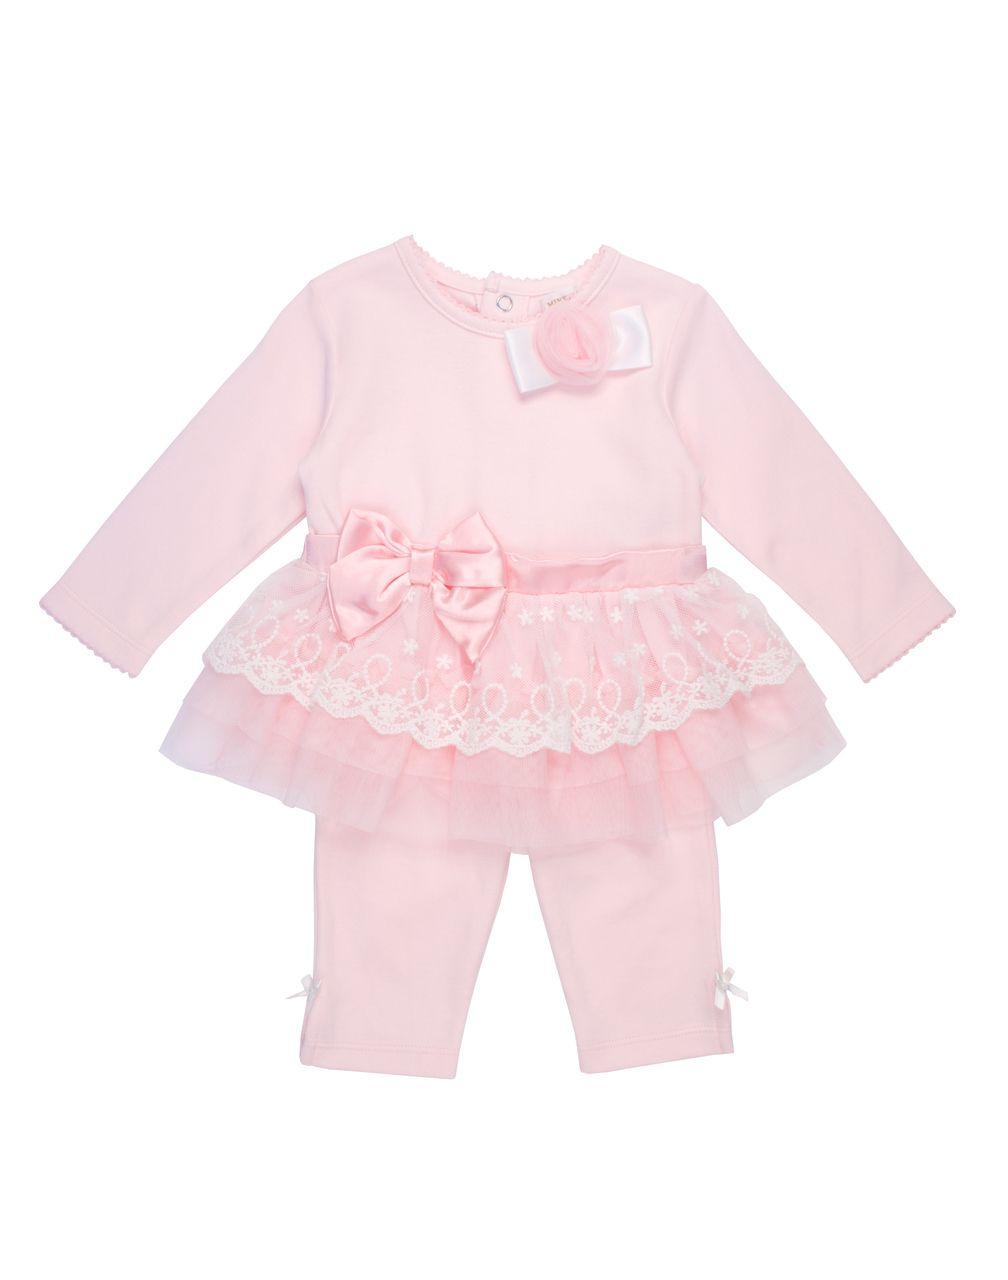 576a7939a5e5 Mintini - Pink Dress Legging Set - 1851 - Kiddie Boutique By Claire ...